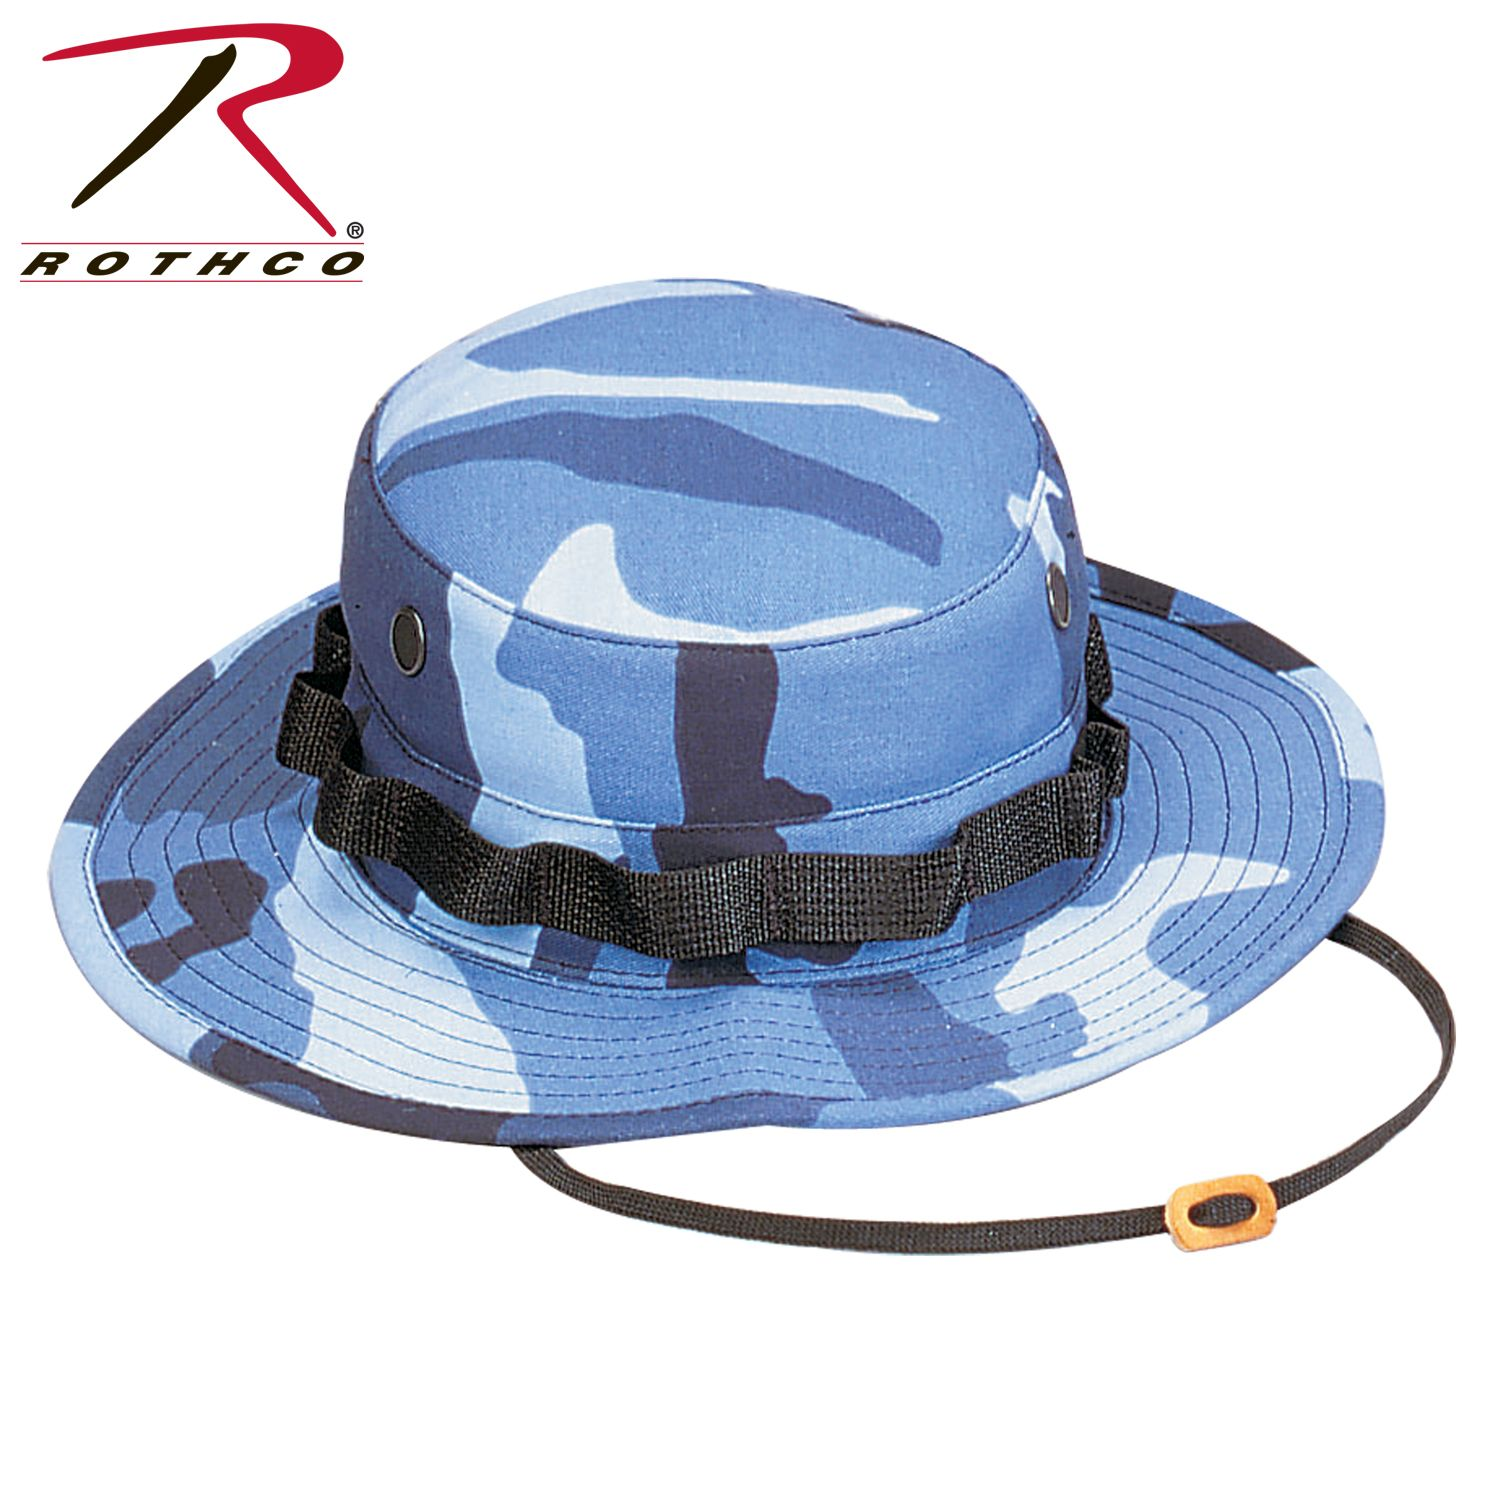 Buy Rothco Camo Boonie Hat Rothco Online at Best price NH